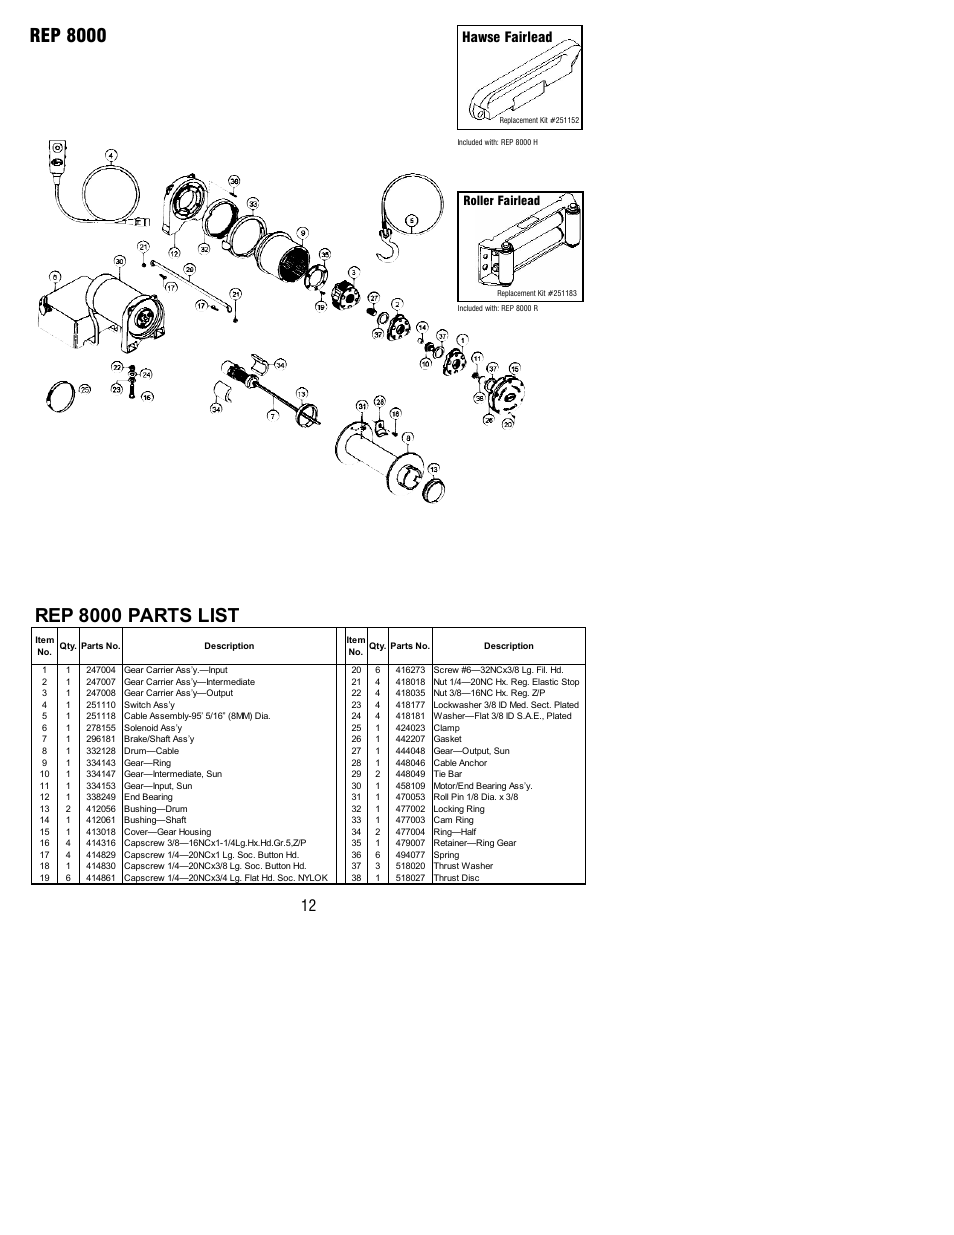 Old Ramsey Winch Wiring Diagram - Wiring Diagrams on